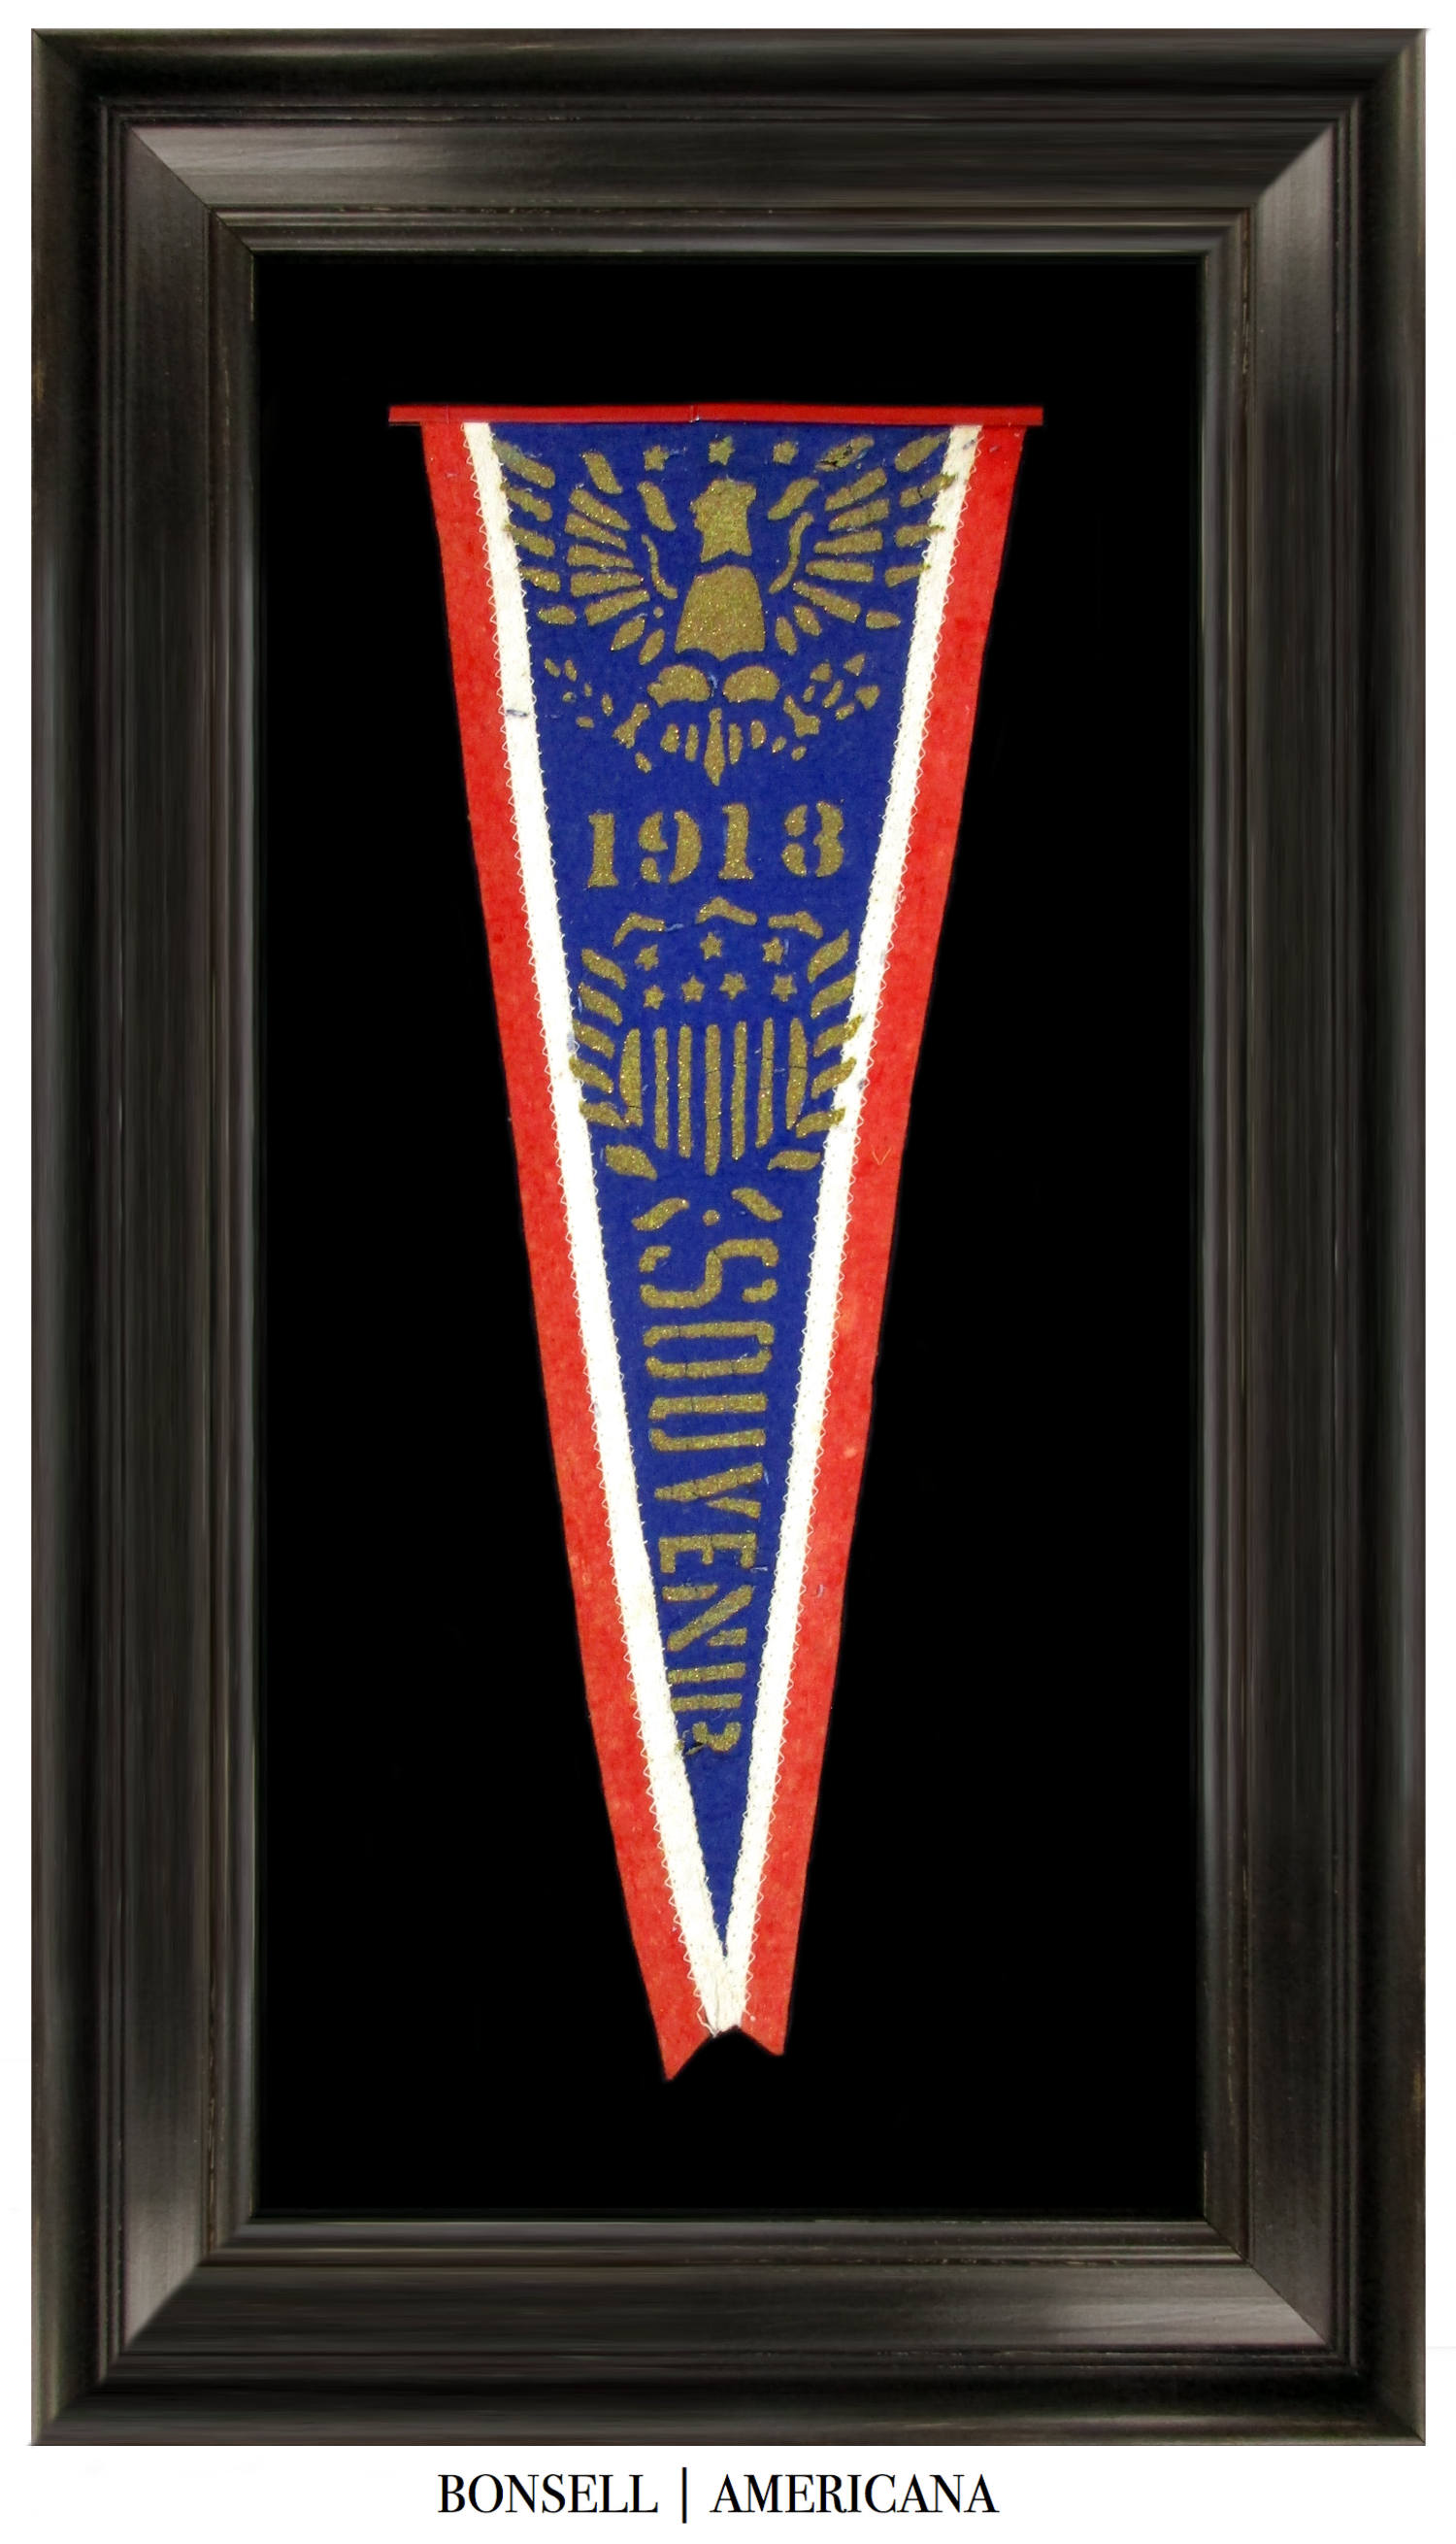 Souvenir Pennant Associated with the Inauguration of President Wilson 1913